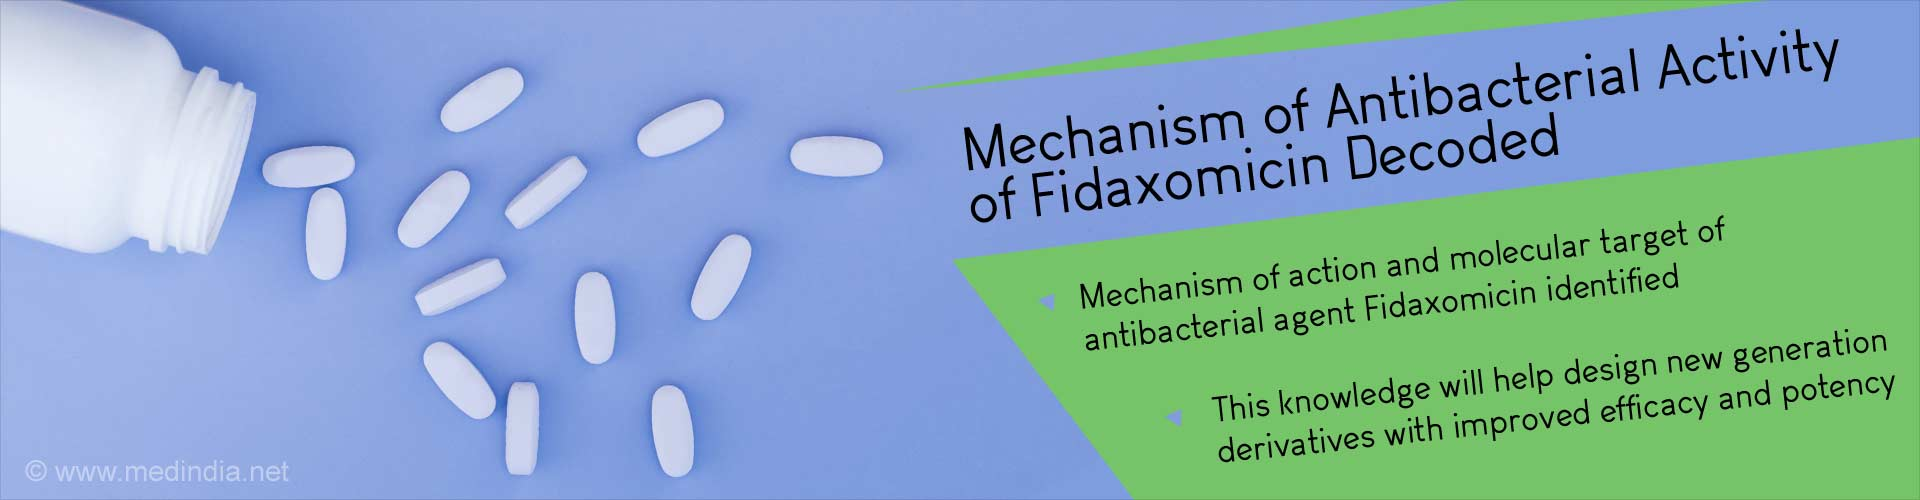 Breakthrough In Identifying Molecular Target and Mode of Action of Fidaxomicin